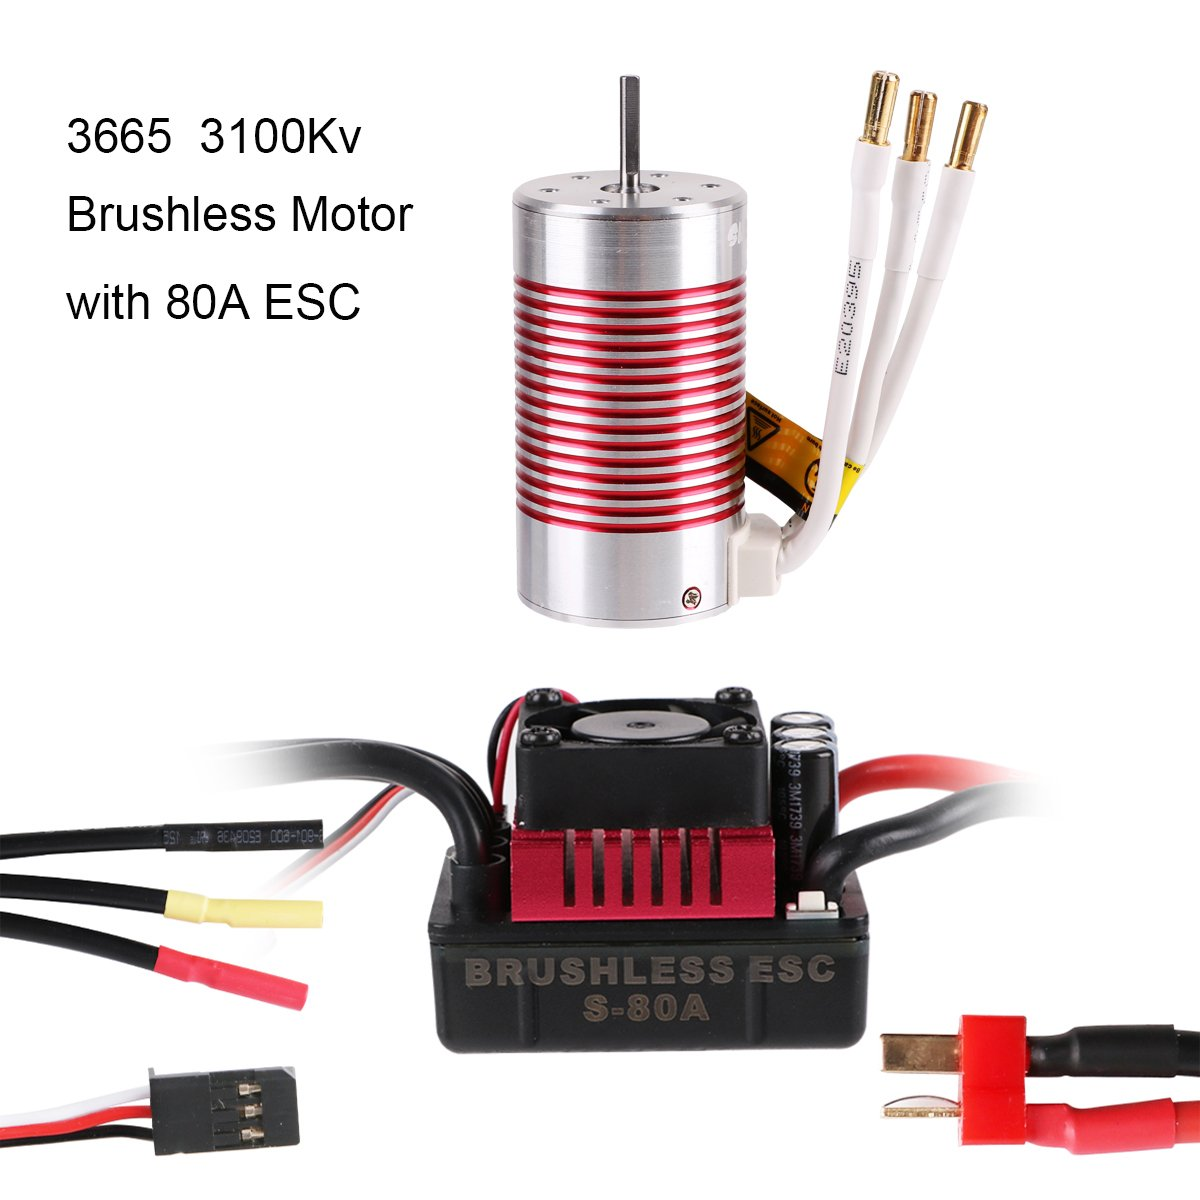 Crazepony-UK 3665 3100KV 4P Brushless Motor with 80A ESC ( Electric Speed Controller ) Waterproof for 1/10 1/8 RC Car ( Red )